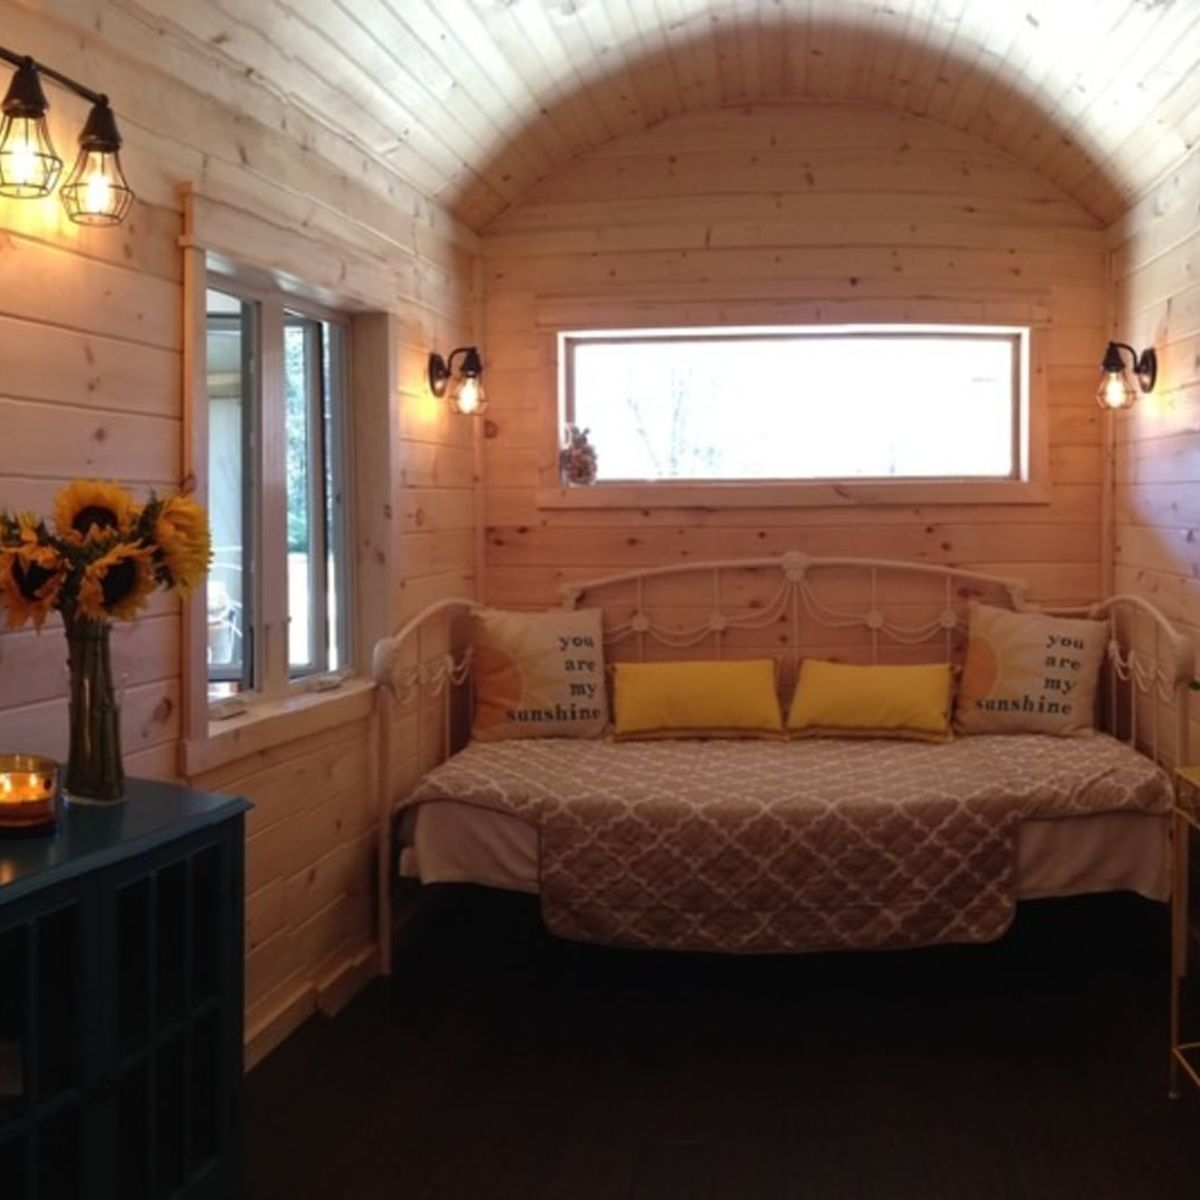 Search Houses: Tiny House For Sale In Denver, North